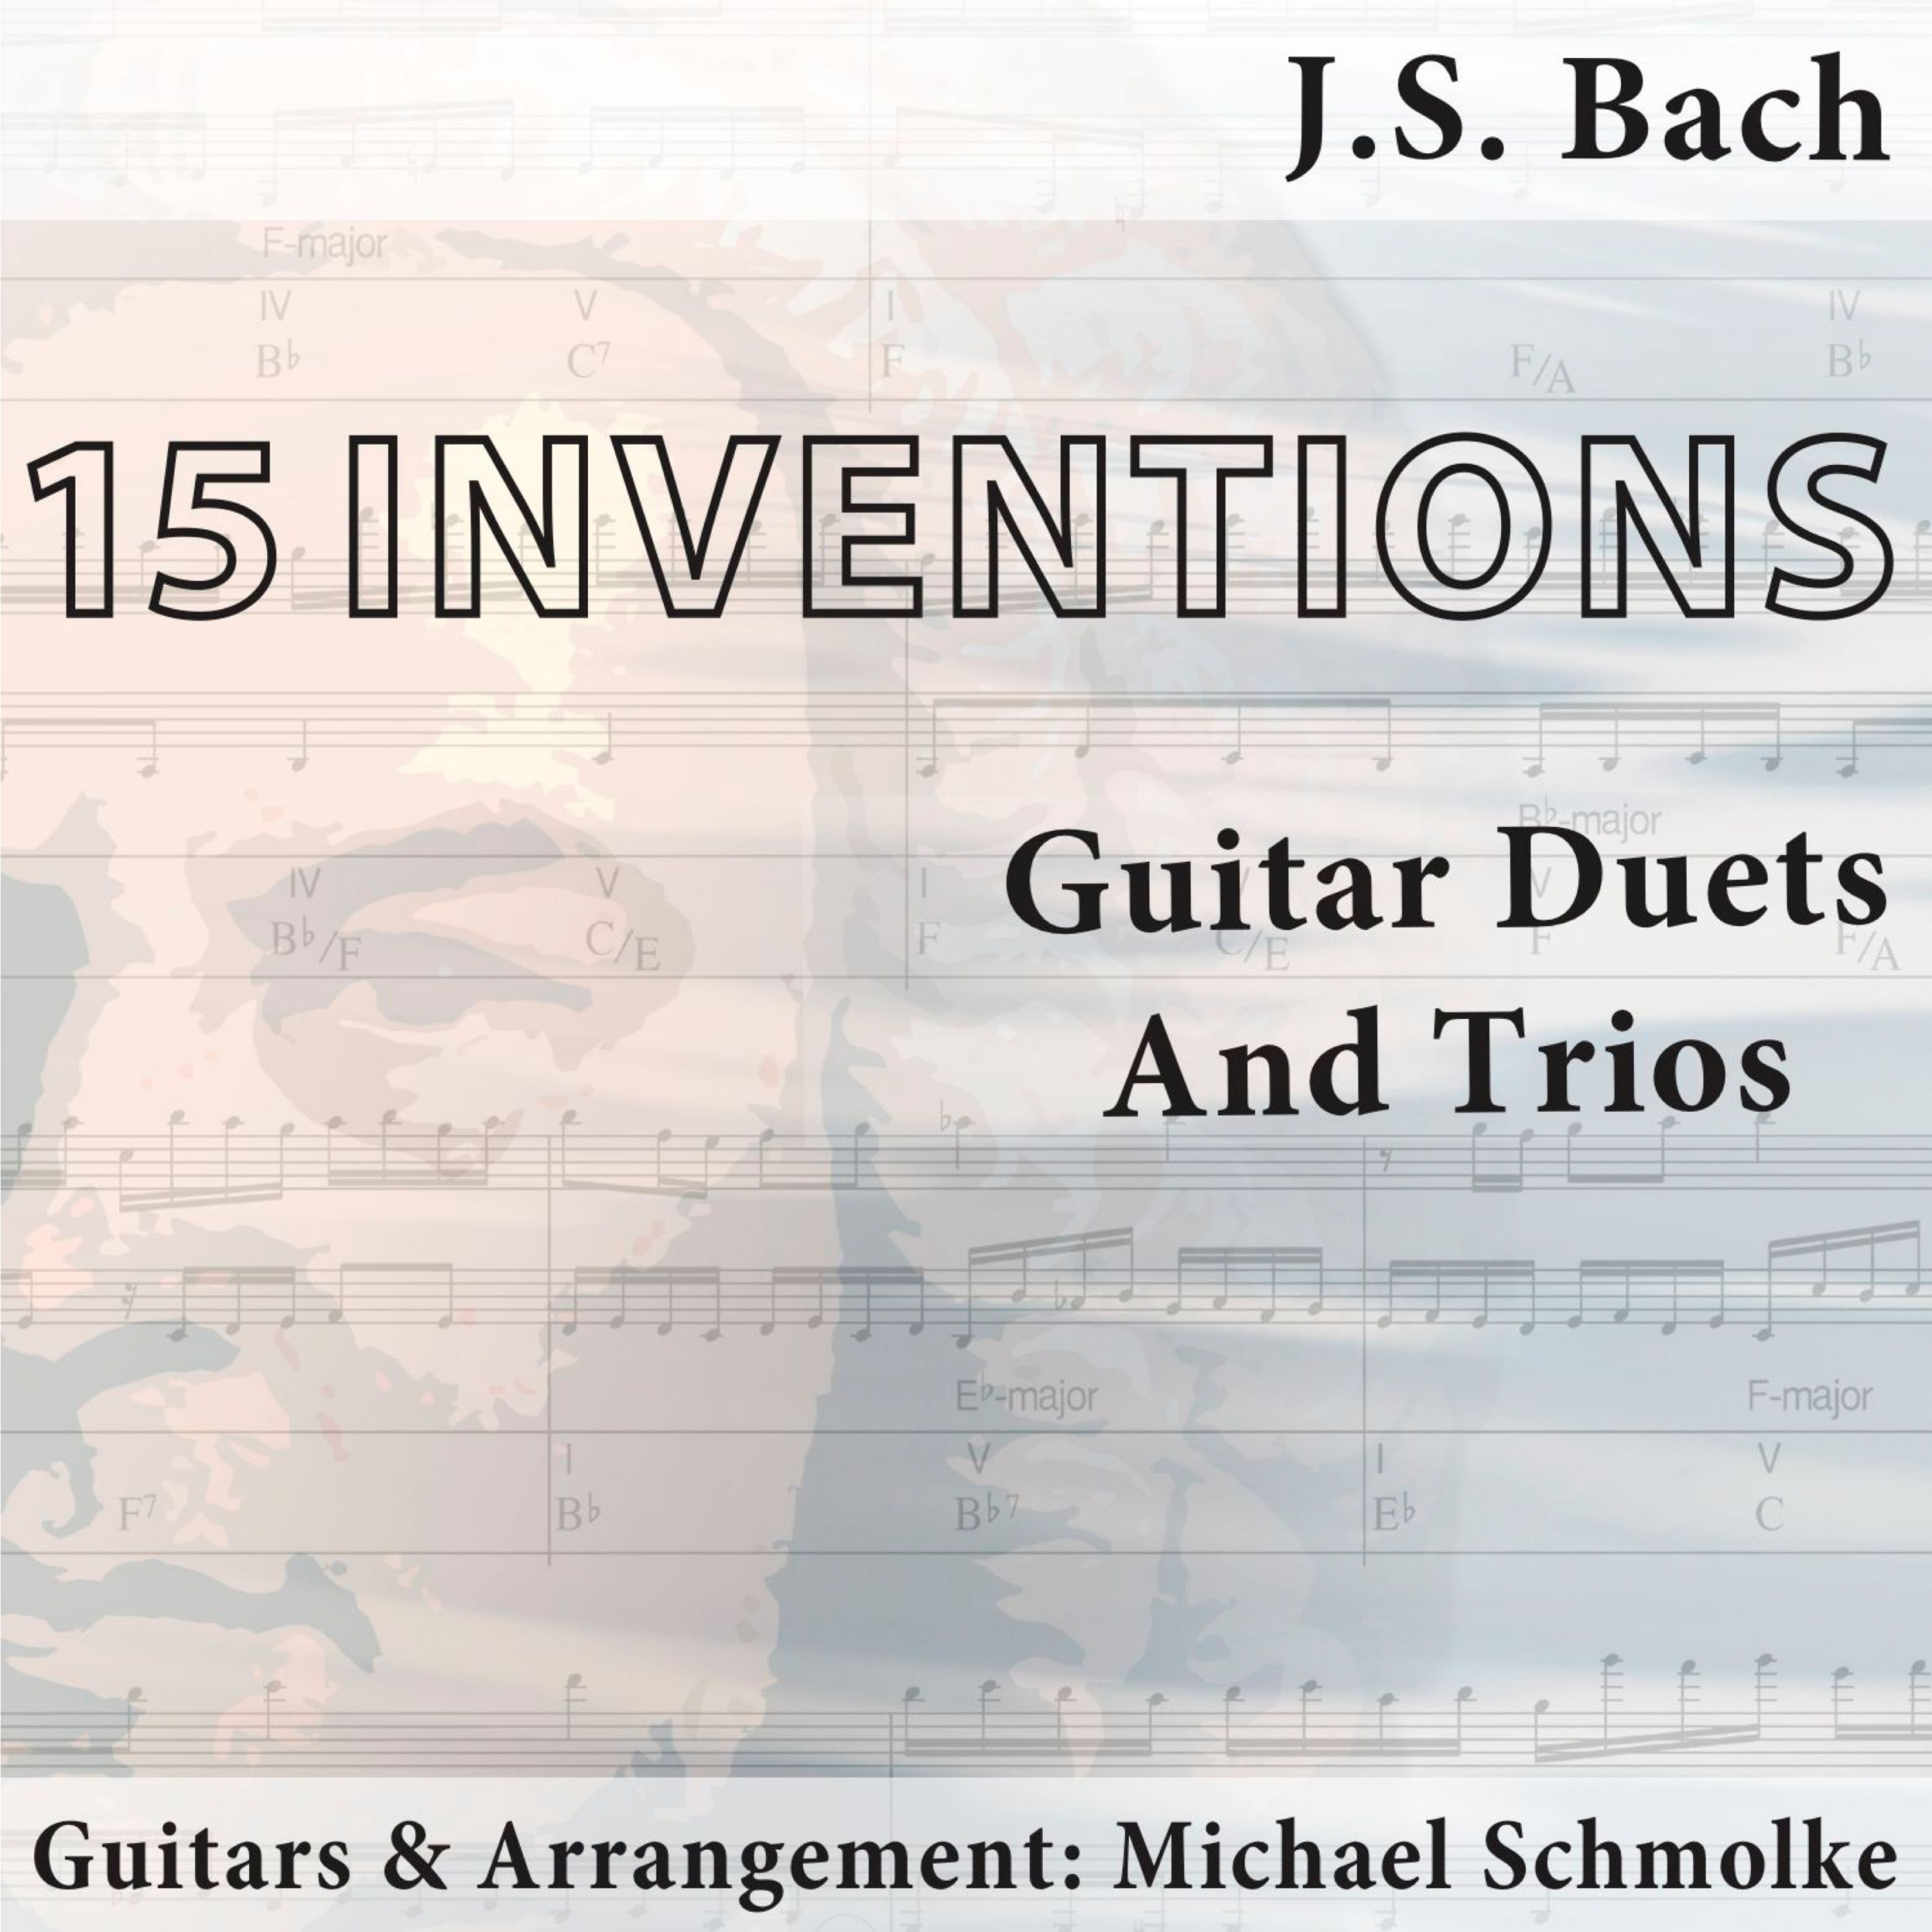 15 Inventions - Guitar Duets And Trios